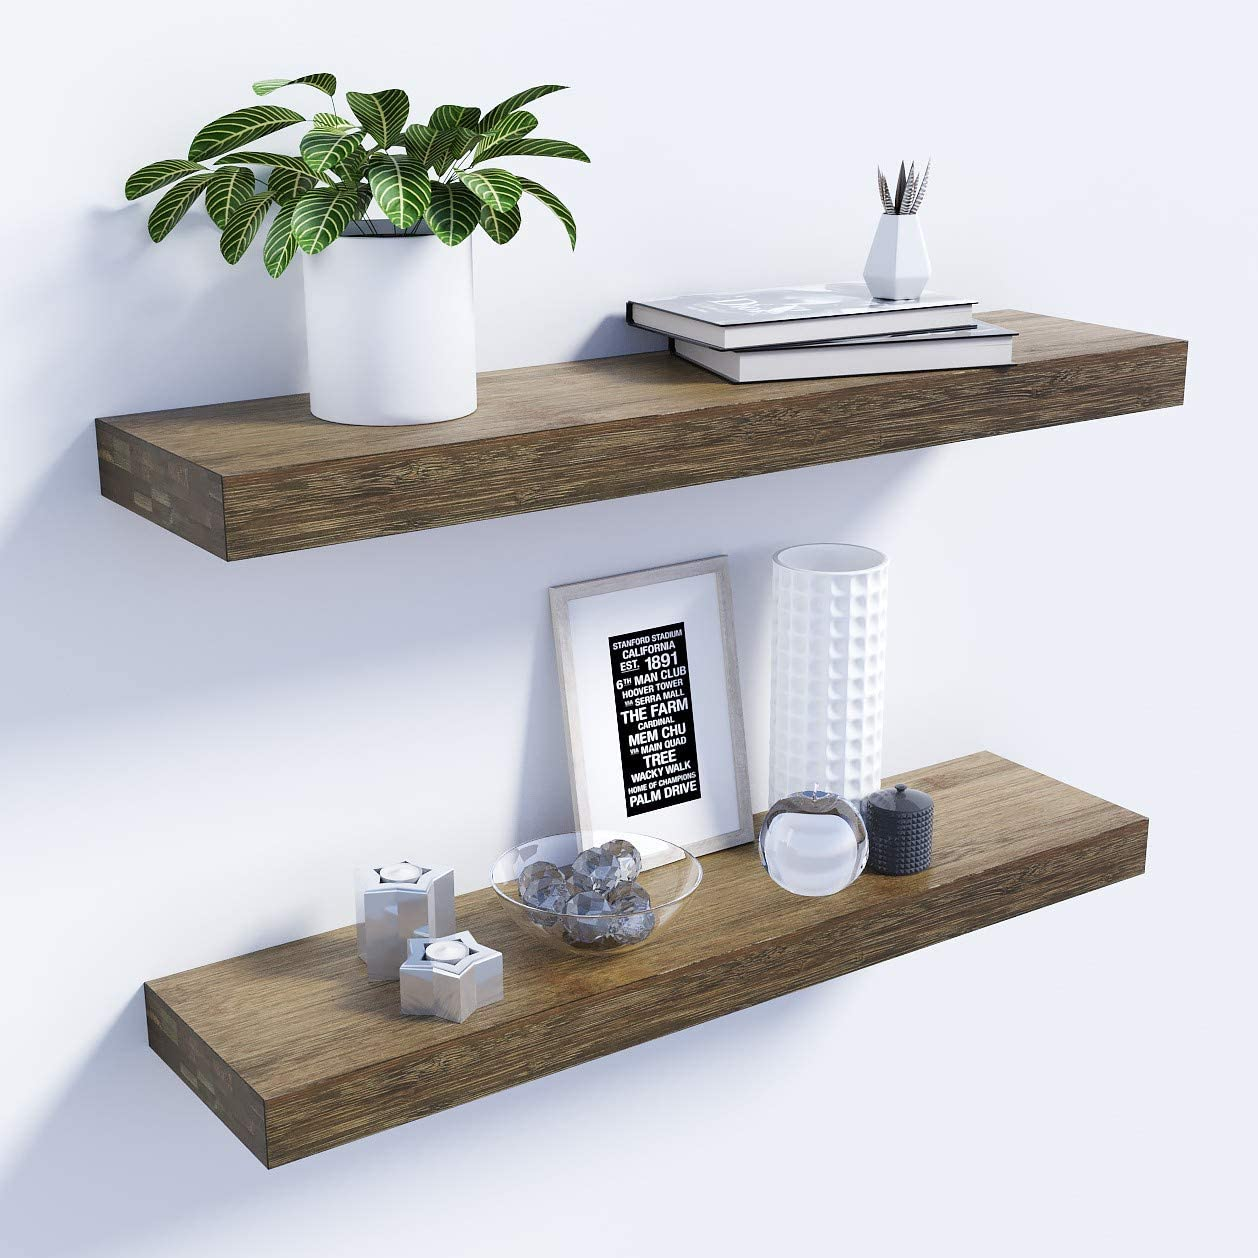 Bamfox Floating Shelves Set Of 2 Natural Bamboo Wall Shelf Wall Mounted Shelves Wall Mount Display Rack With Large Storage L23 X W6 For Kitchen Living Room Bathroom Bedroom Kitchen Dining